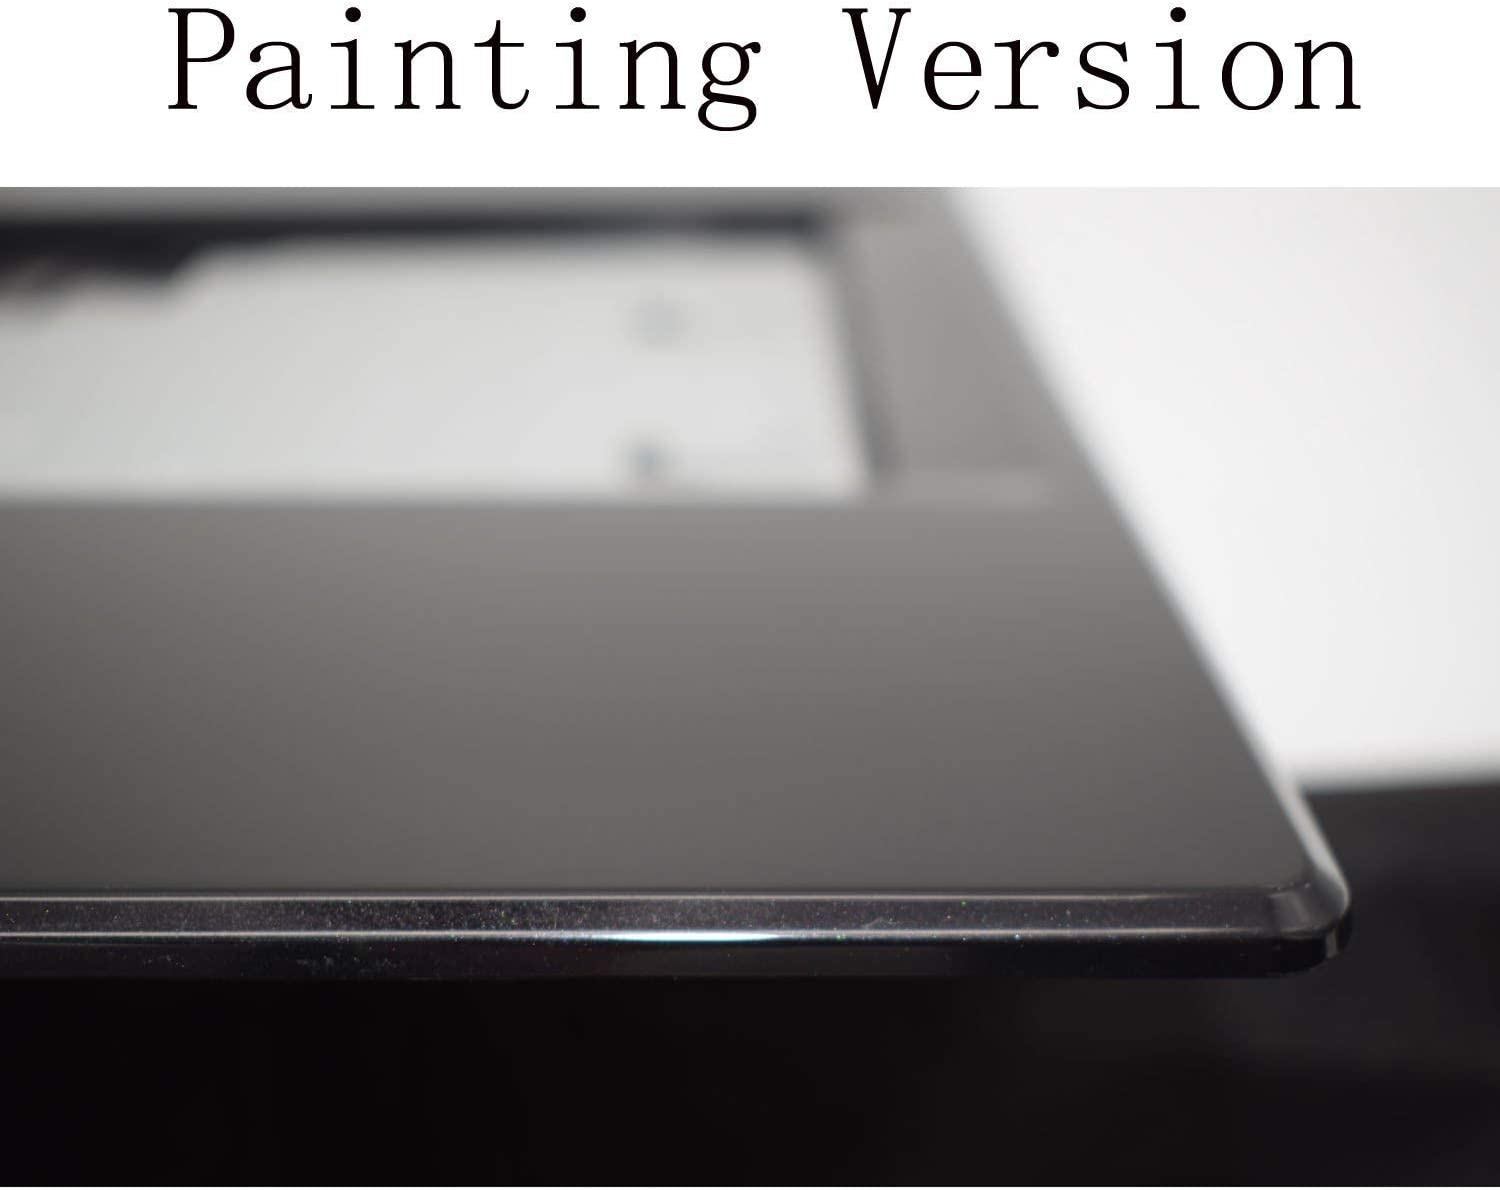 Compatible Replacement for New for Lenovo G480 G485 Palmrest Upper Lid Keyboard Cover Painting Version AP0N1000700